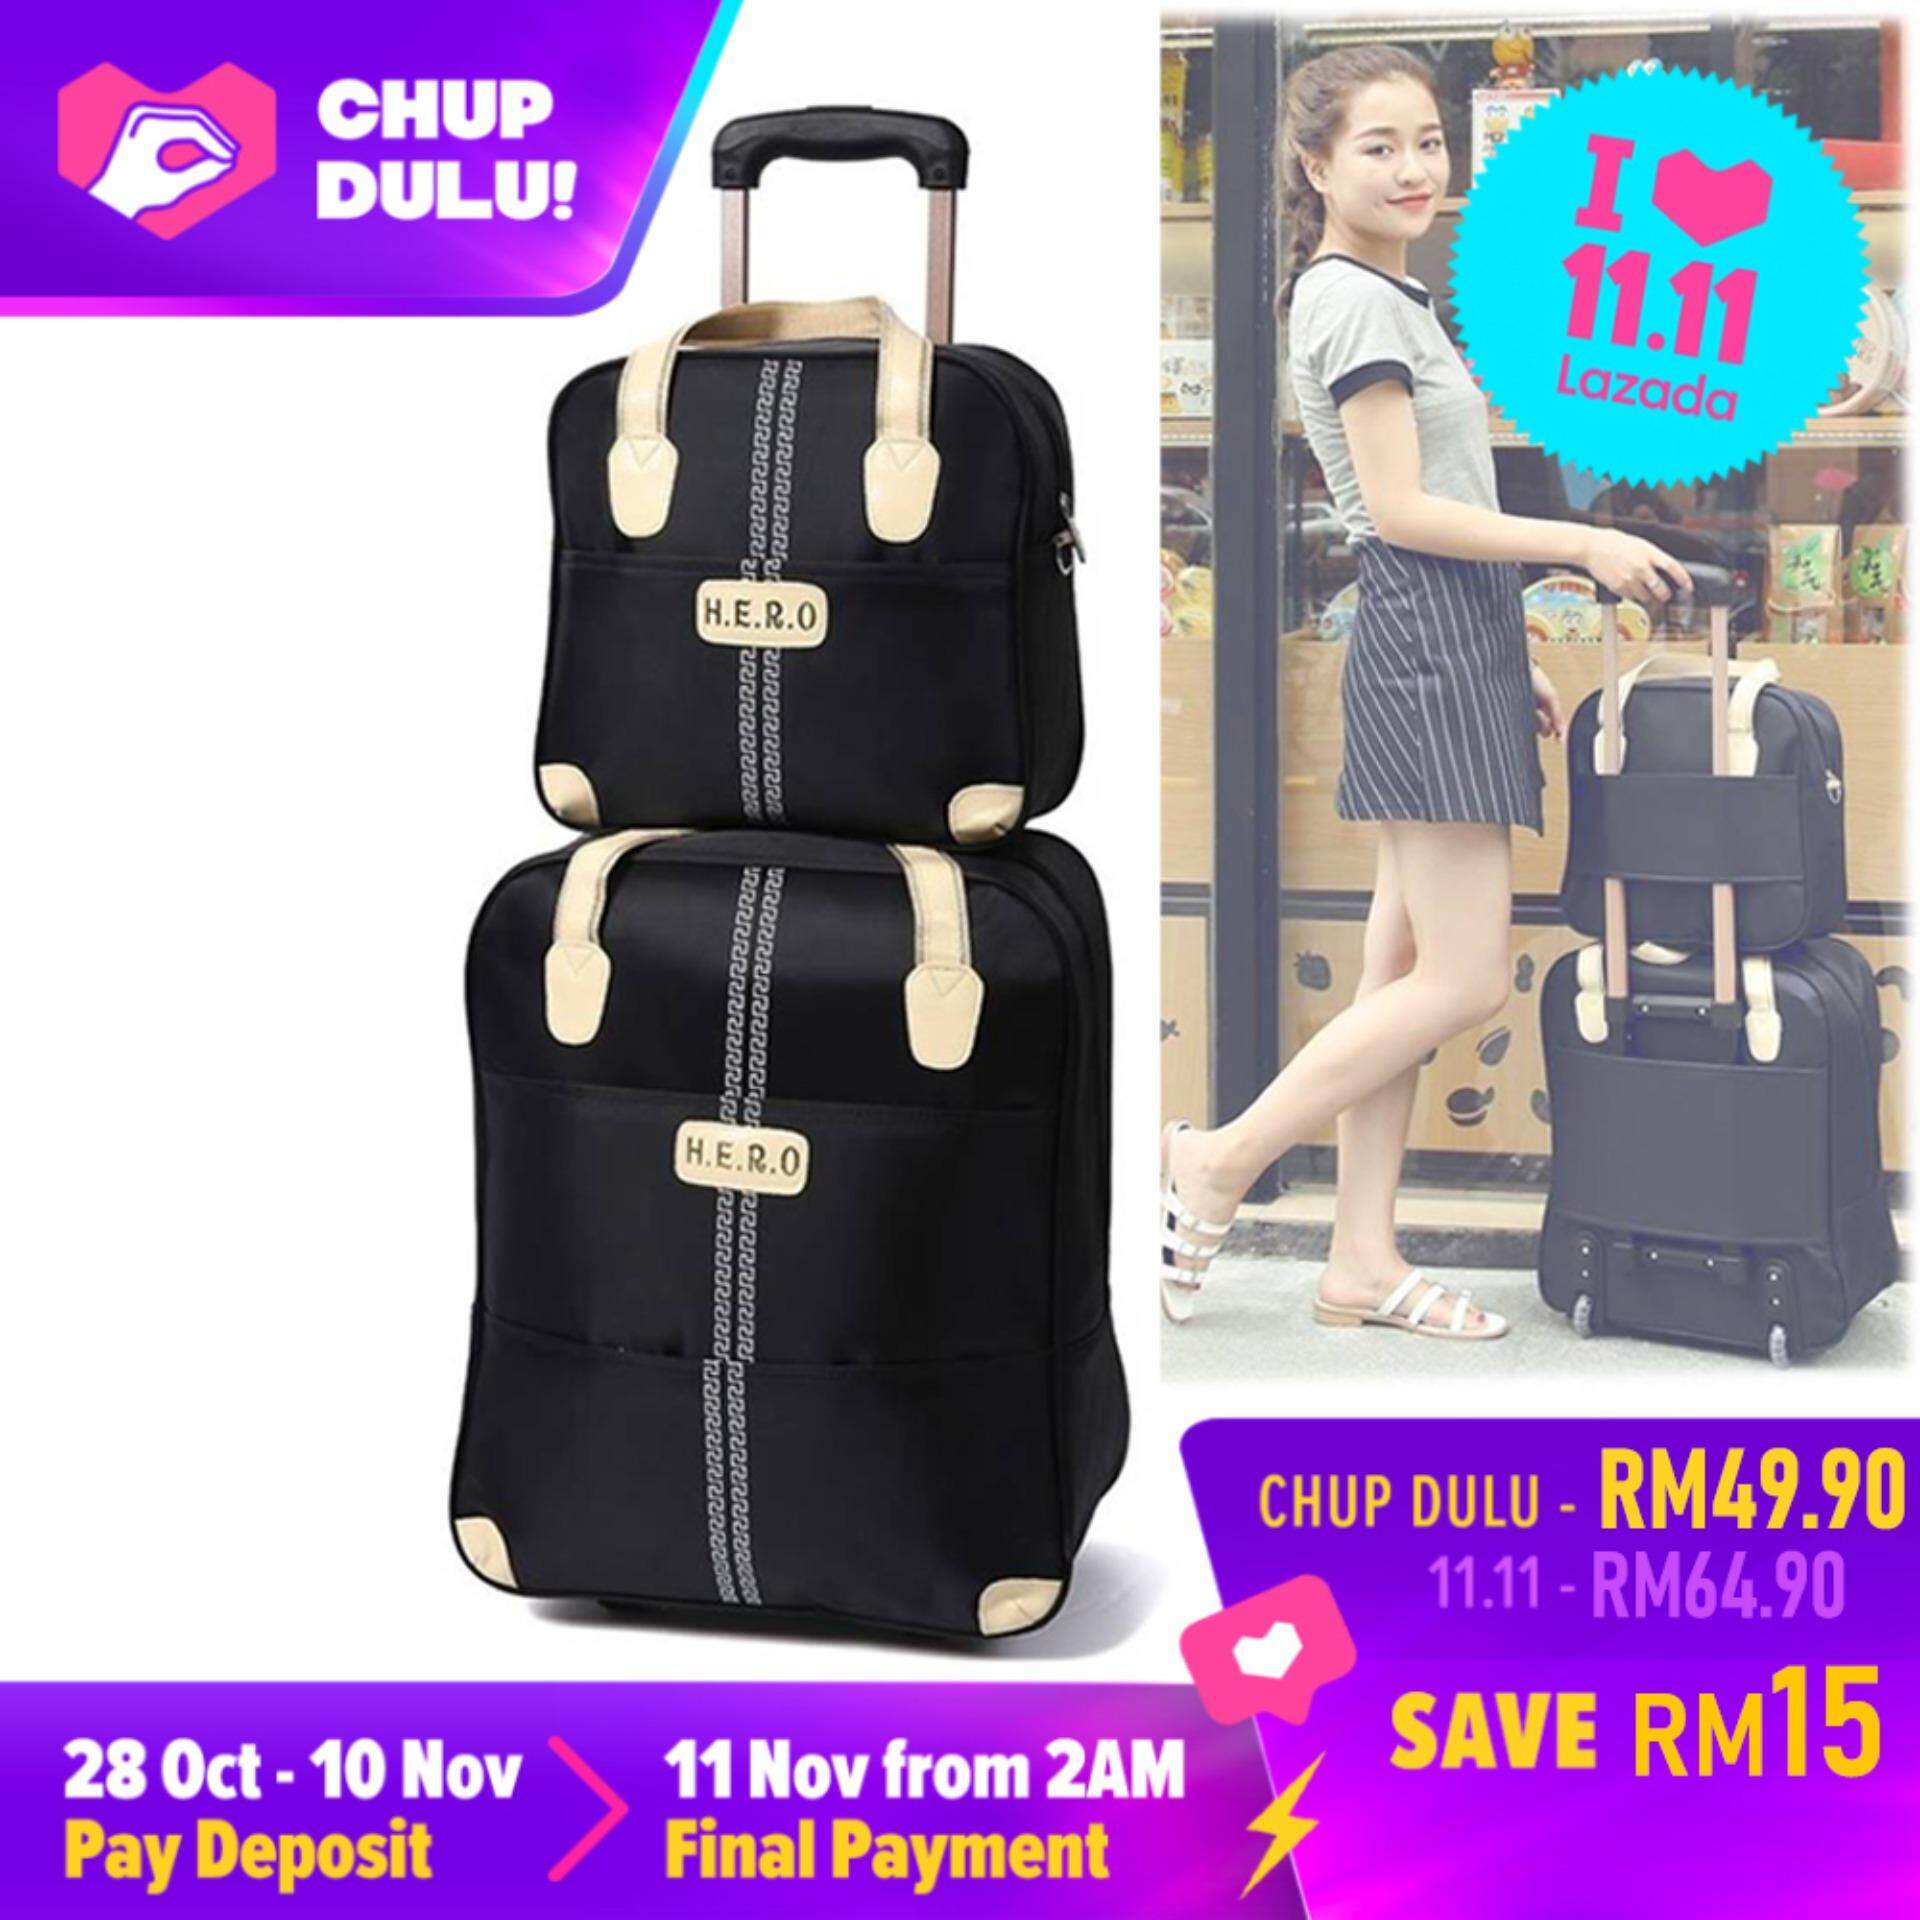 [11.11 CHUP DULU] Travel Star 2 in 1 HERO Travel Bag with Trolley - Black